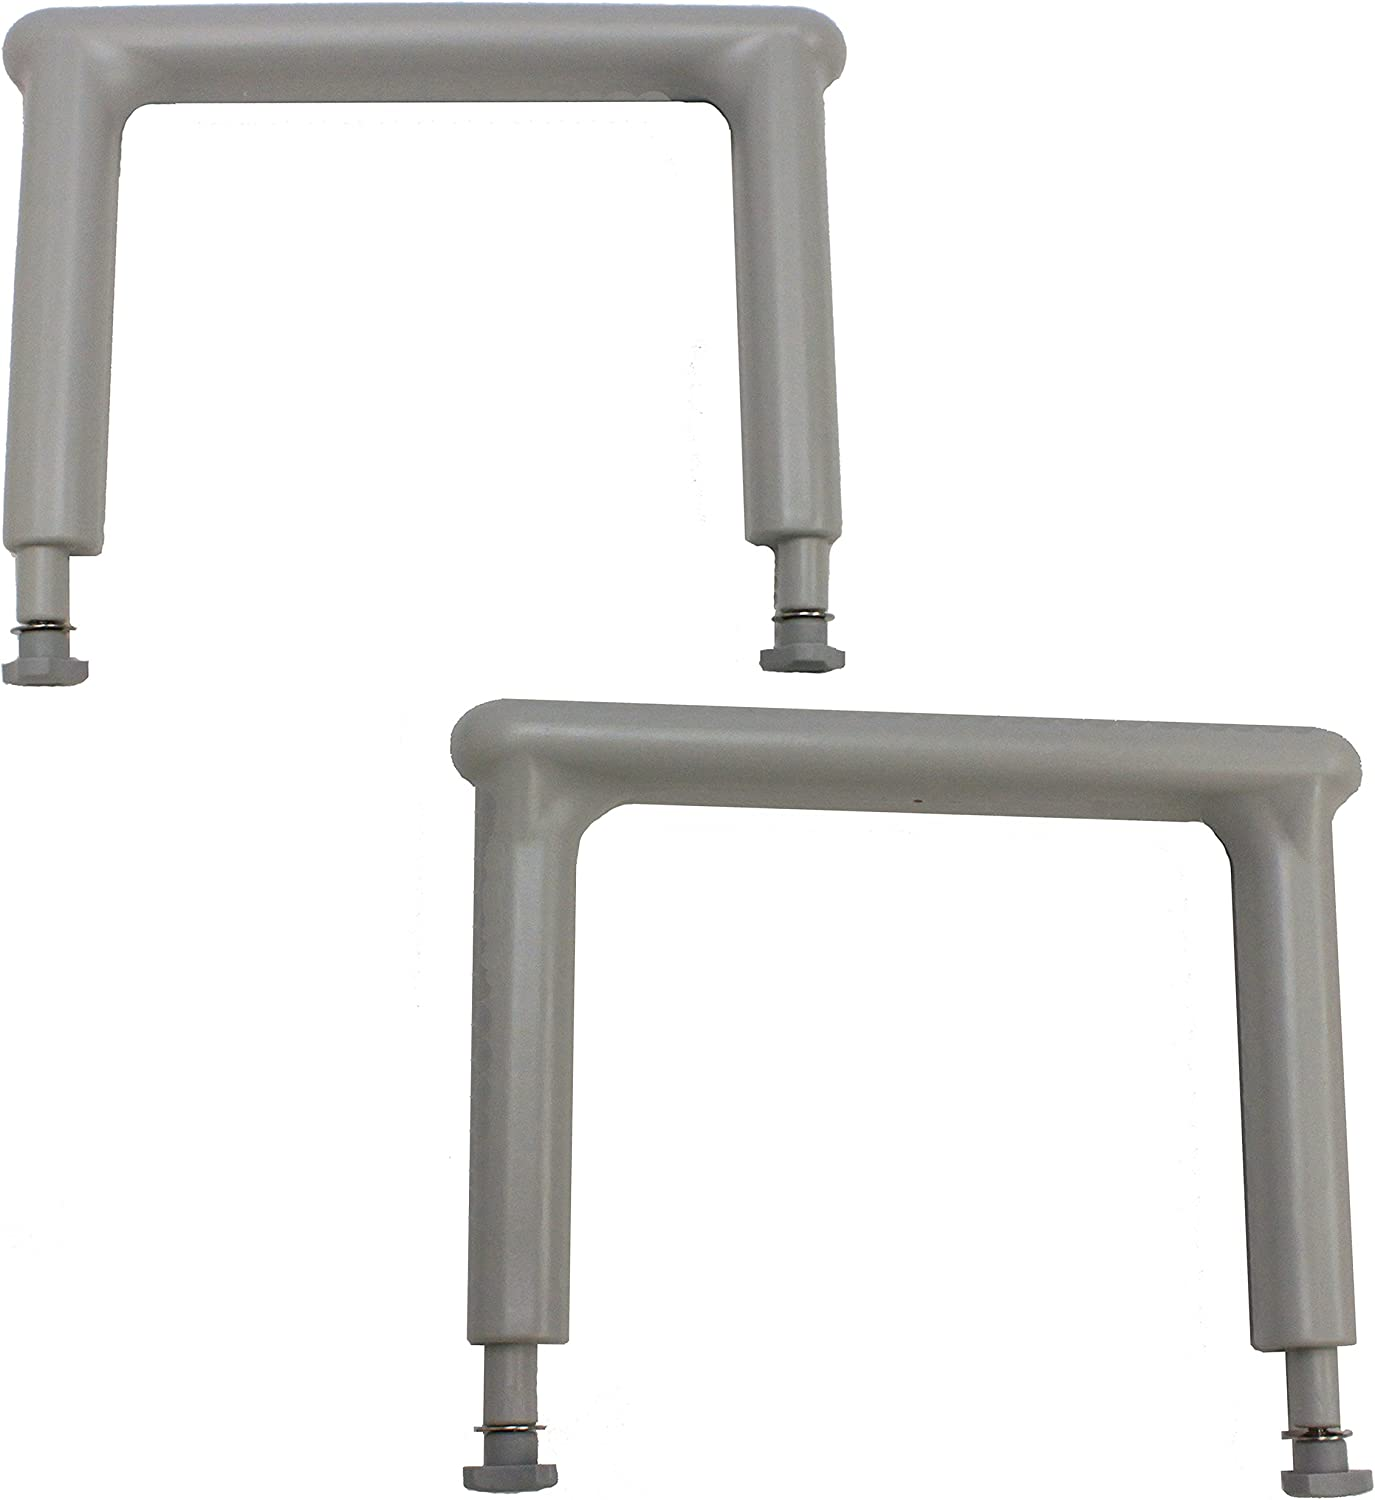 Eagle Health Supplies Armrests (Pair) 71002 for 55-/56-/779-